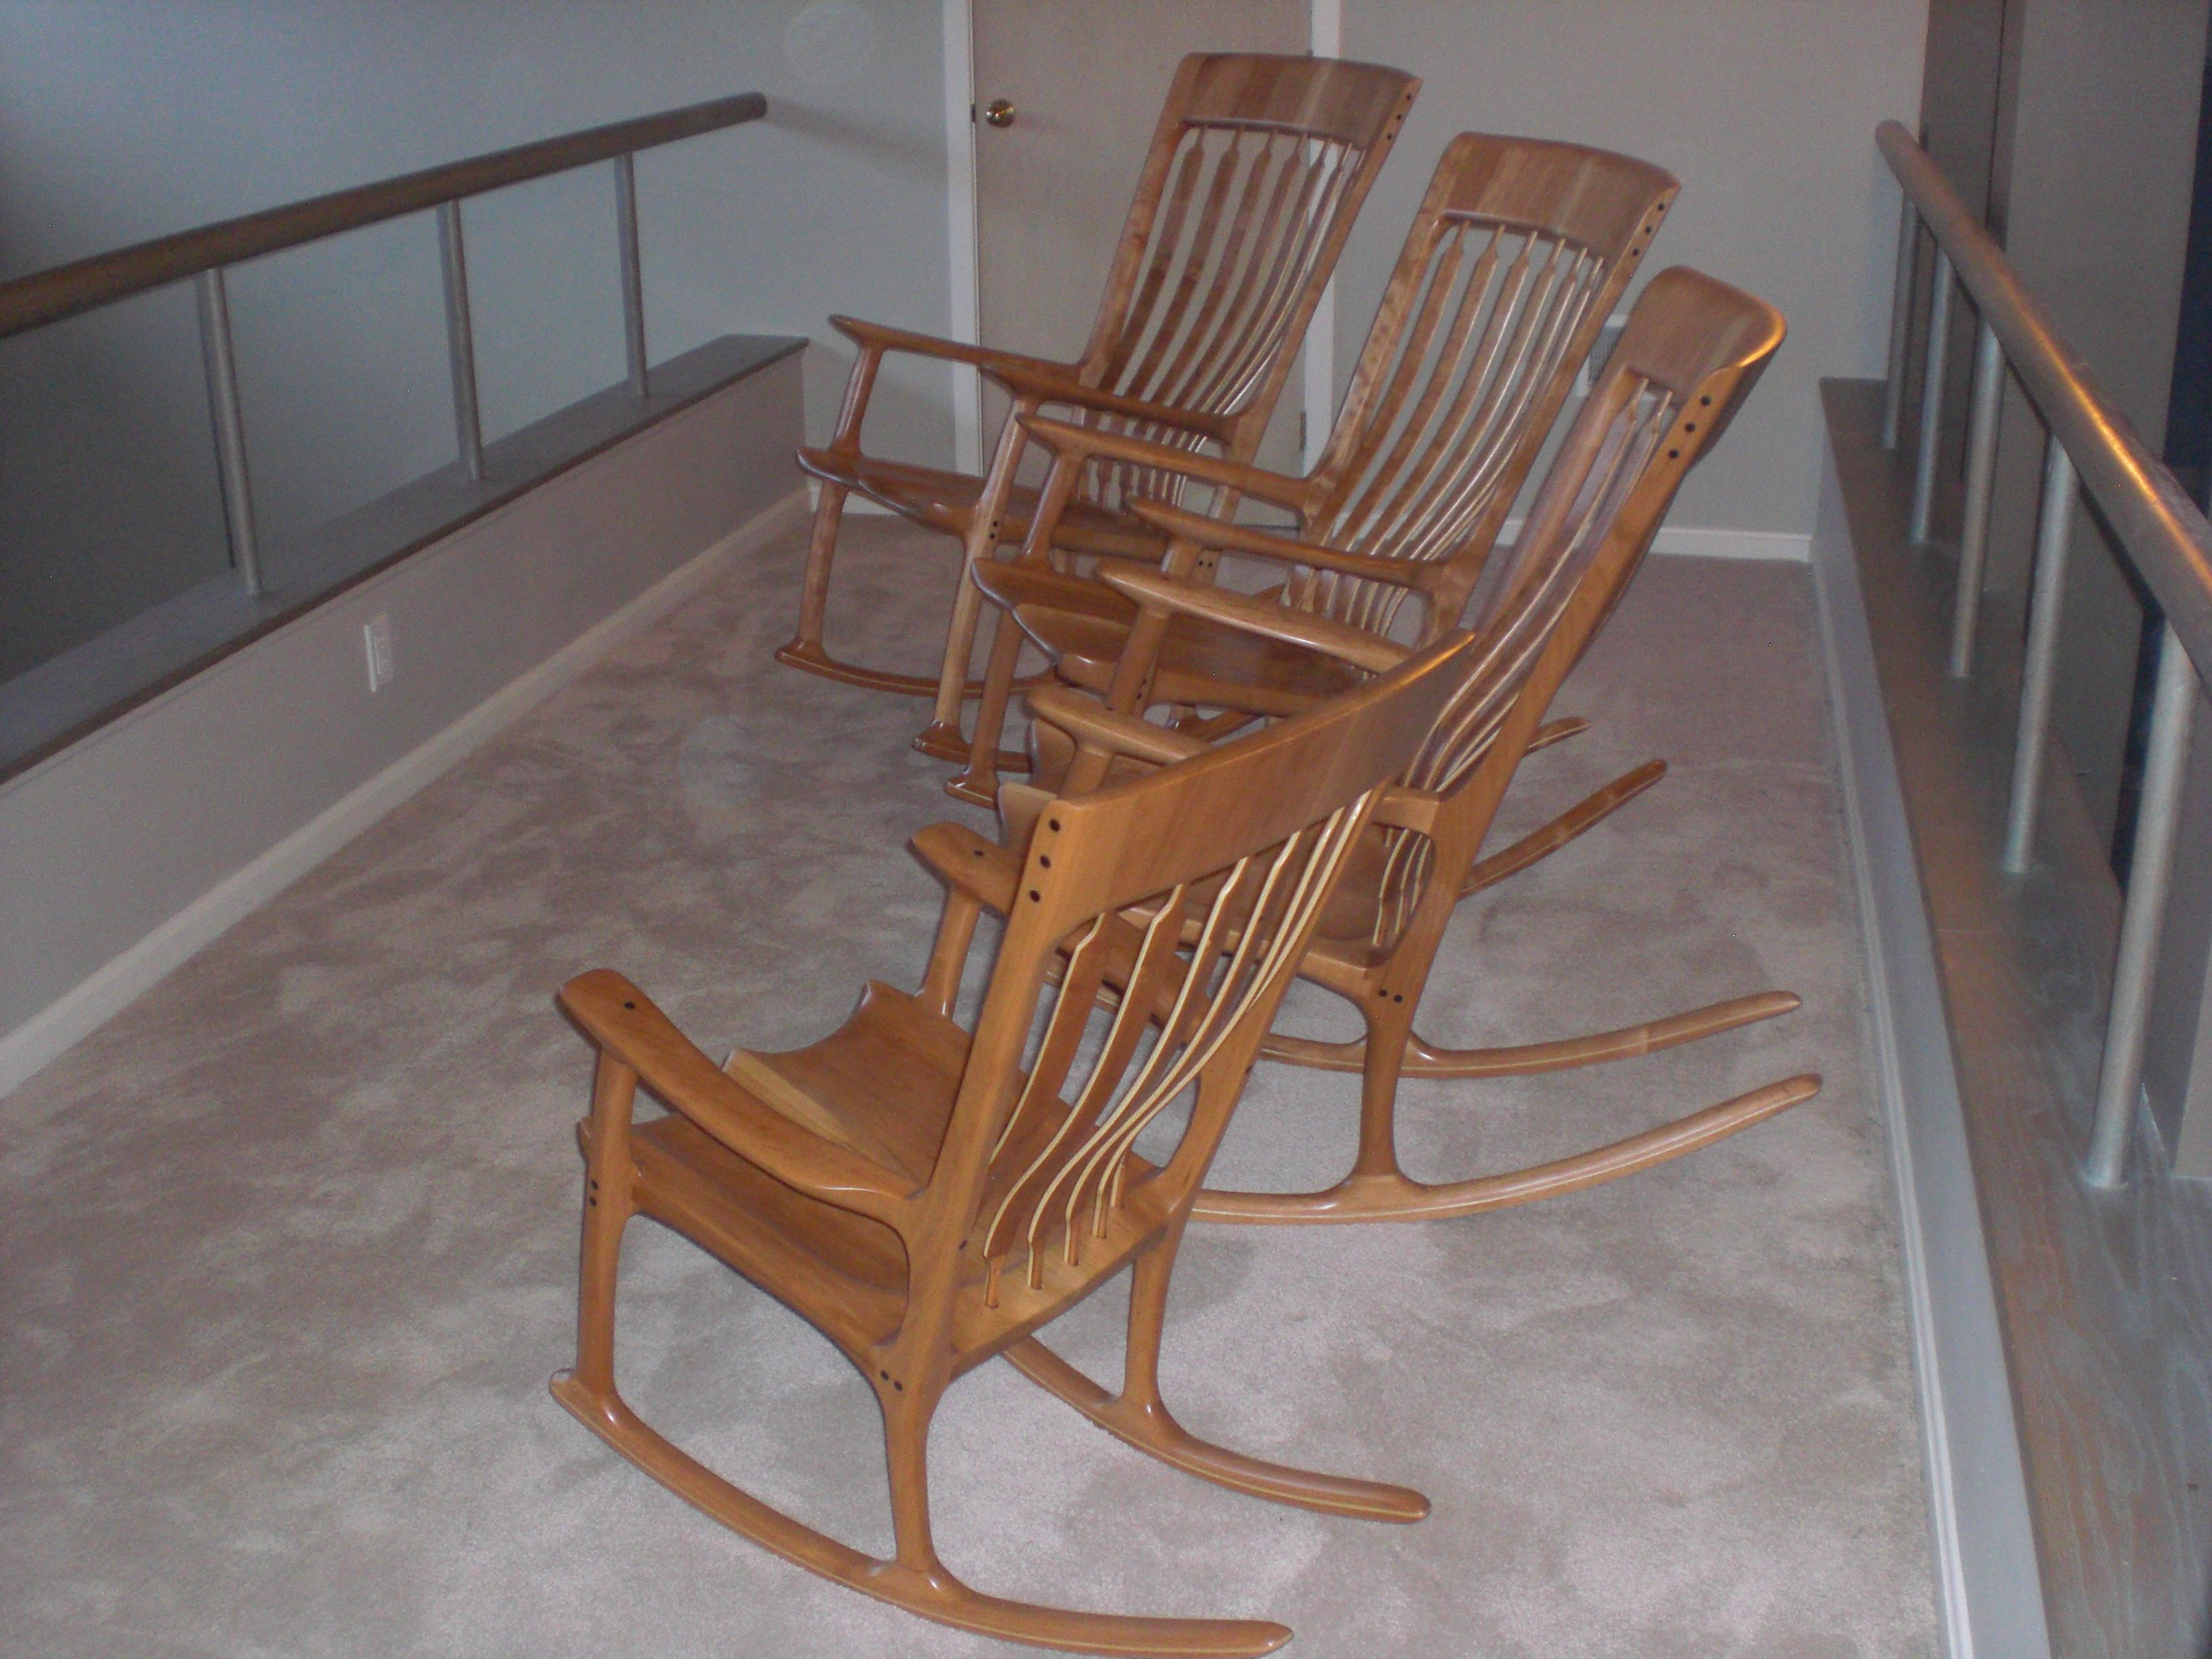 Sam Maloof Rocking Chair Plans Hal Taylor Saucer Target And Inspired Chairs From Bottom To Top Shown In Child Adult Small Medium Large Sizes